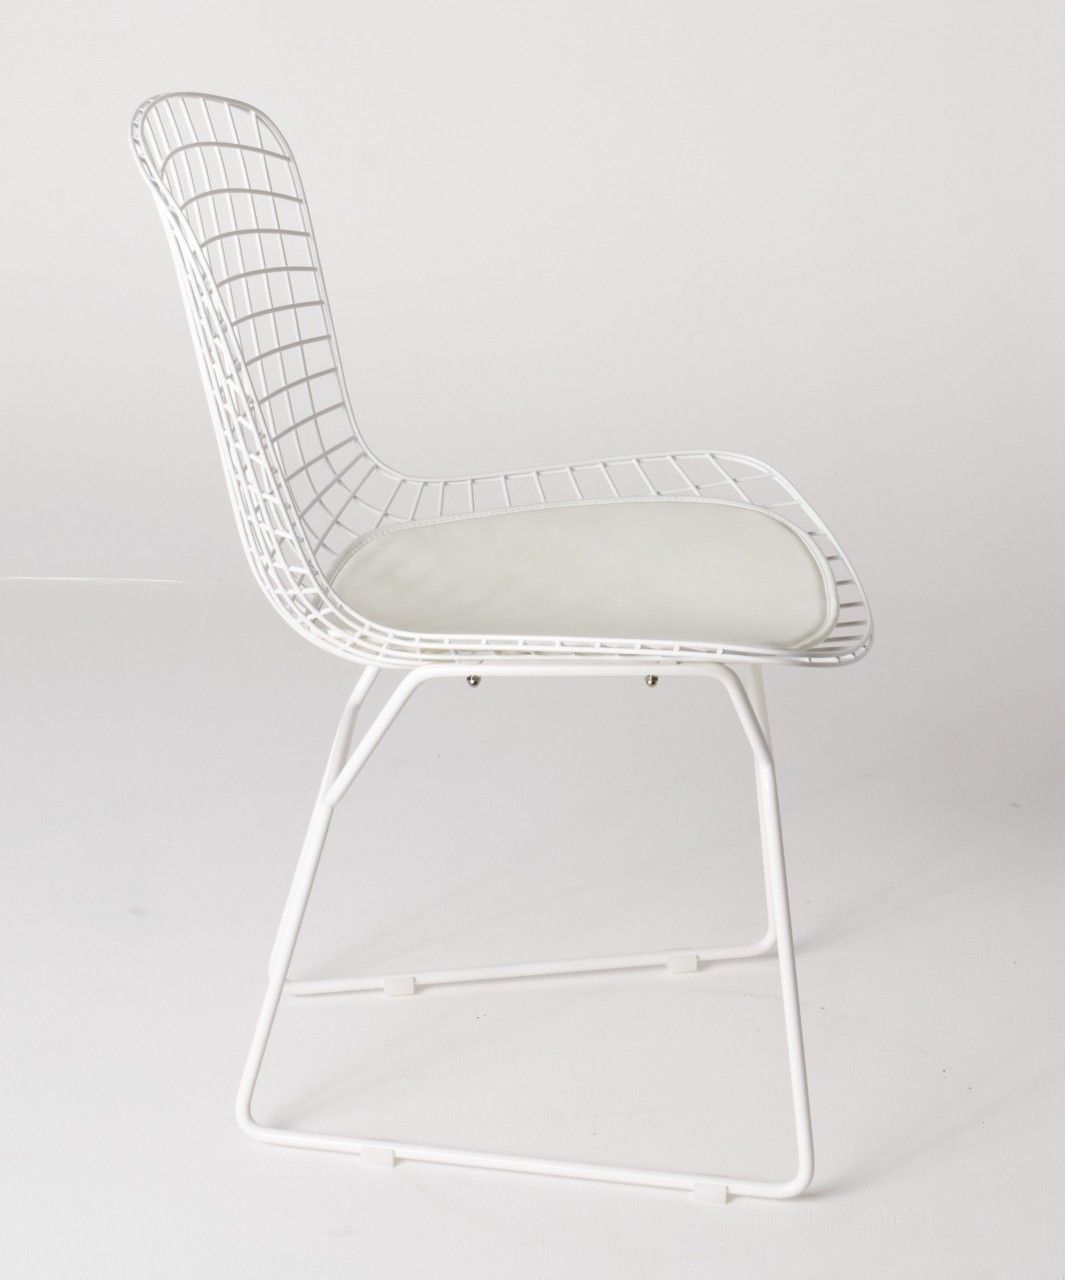 Charming Milano Republic Furniture   Replica Harry Bertoia Bird Chair White  Powdercoated With White Cushion , $99.00 ...